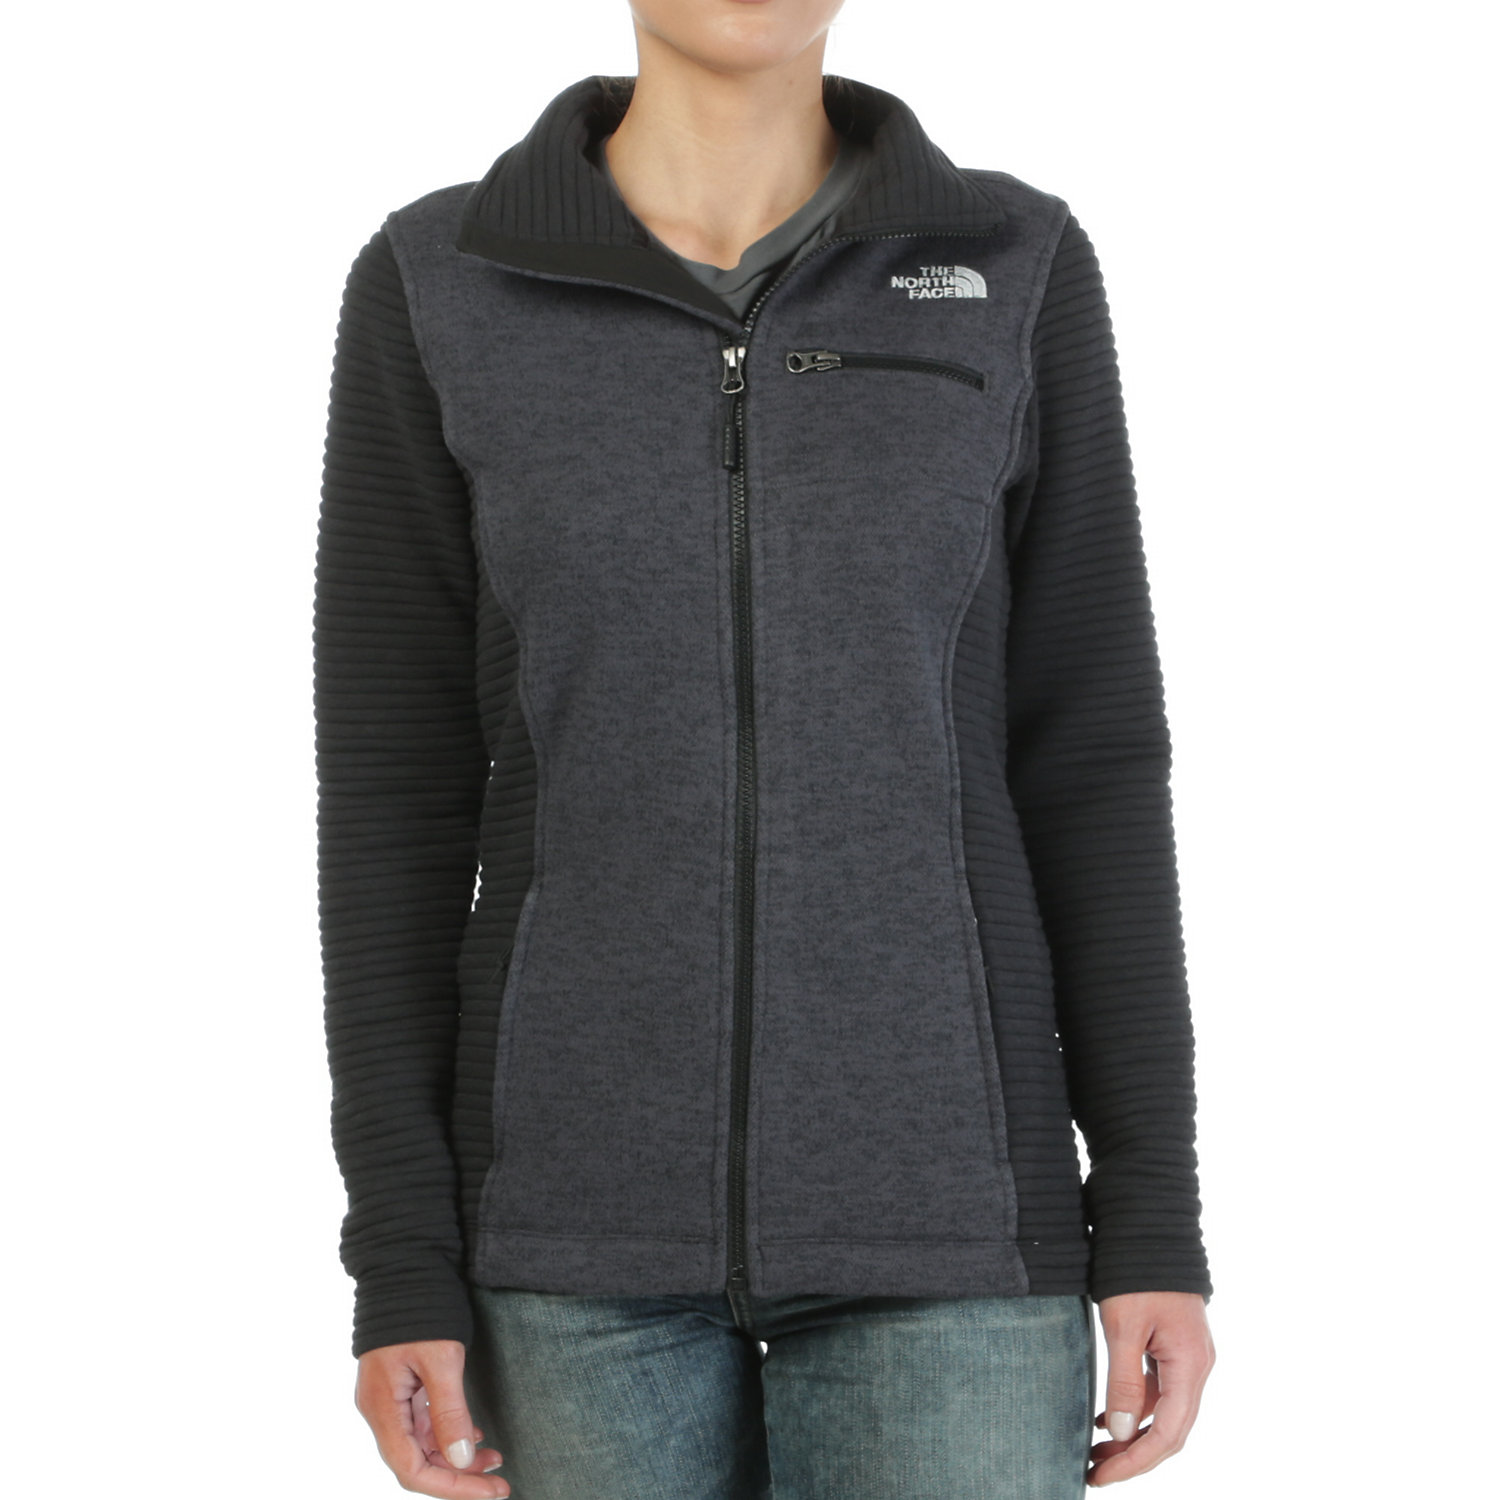 57e23d99b The North Face Women's Indi Insulated Full Zip - Moosejaw